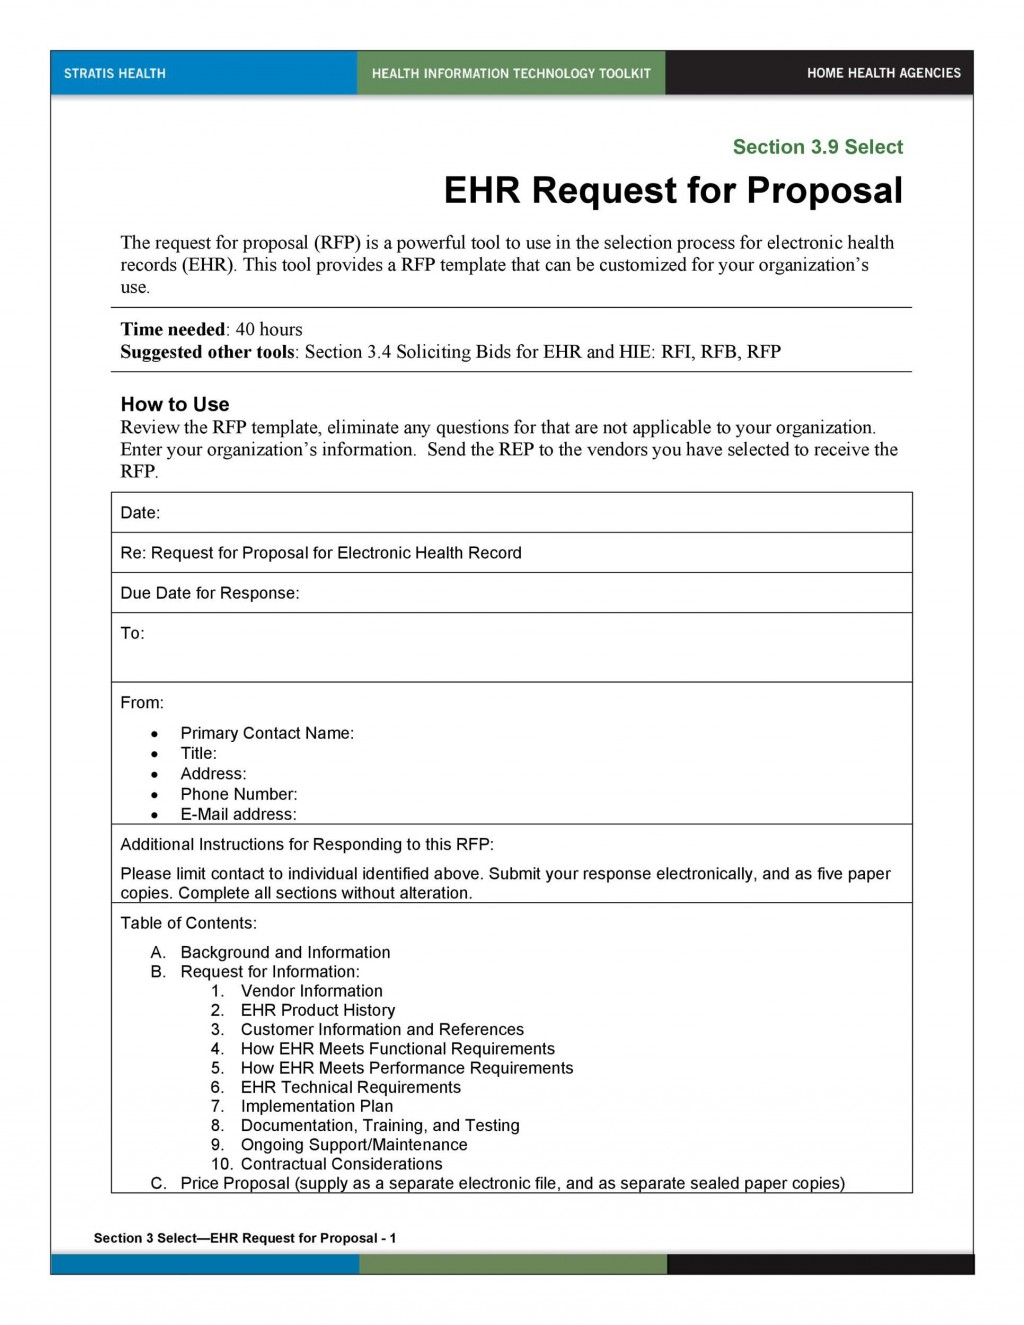 003 Awesome Request For Proposal Response Template Free Photo Large